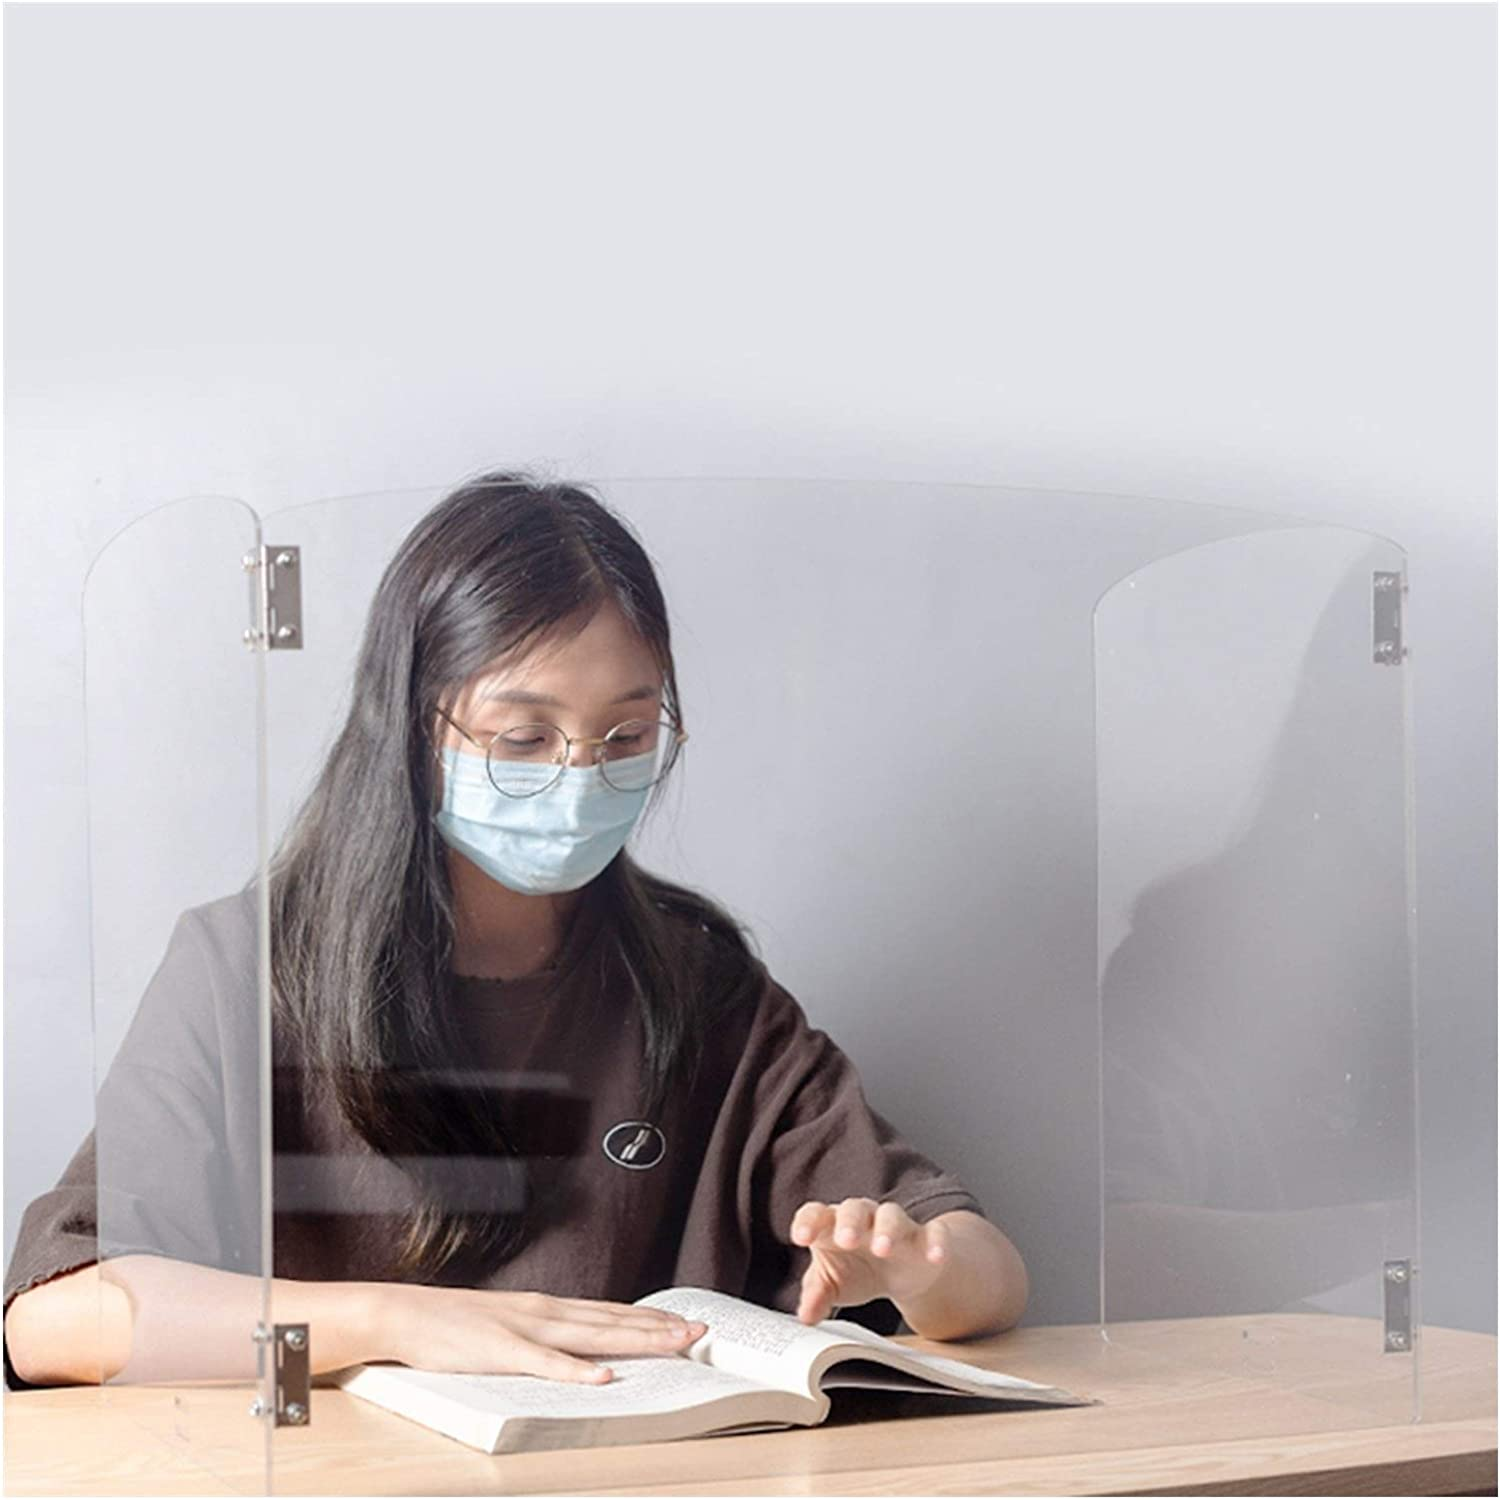 AGLZWY Sneeze Guard, Portable Folding Student Desktop Partition Screen, for Classroom, Table, Office Transparent Perspex Sneeze Shield (Color : Clear, Size : 45cm high)